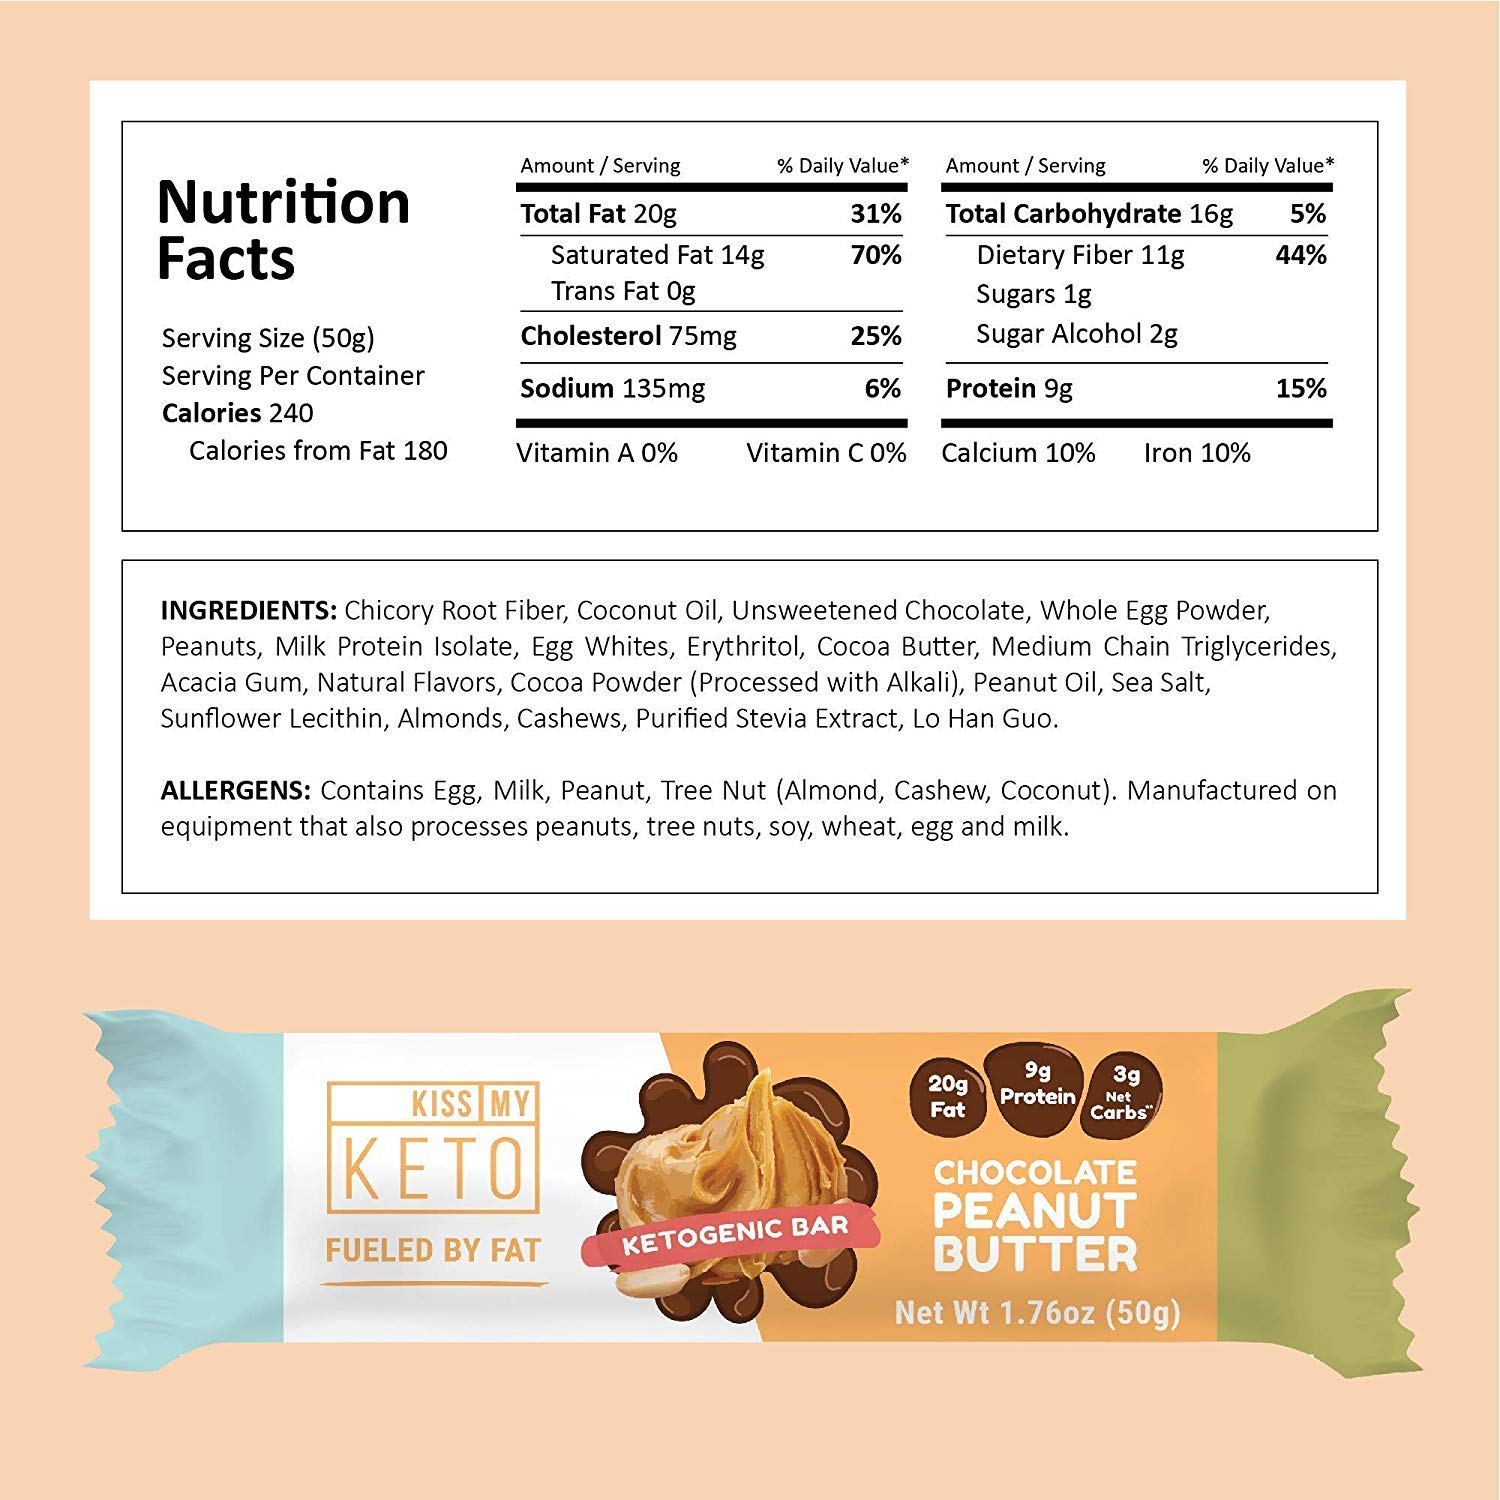 Kiss My Keto Snacks Keto Bars - Keto Chocolate Variety Pack (12) Nutritional Keto Food Bars, Paleo, Low Carb/Glycemic Keto Friendly Foods, Natural On-The-Go Snacks, Quality Fat Bars 3g Net Carbs by Kiss My Keto (Image #3)